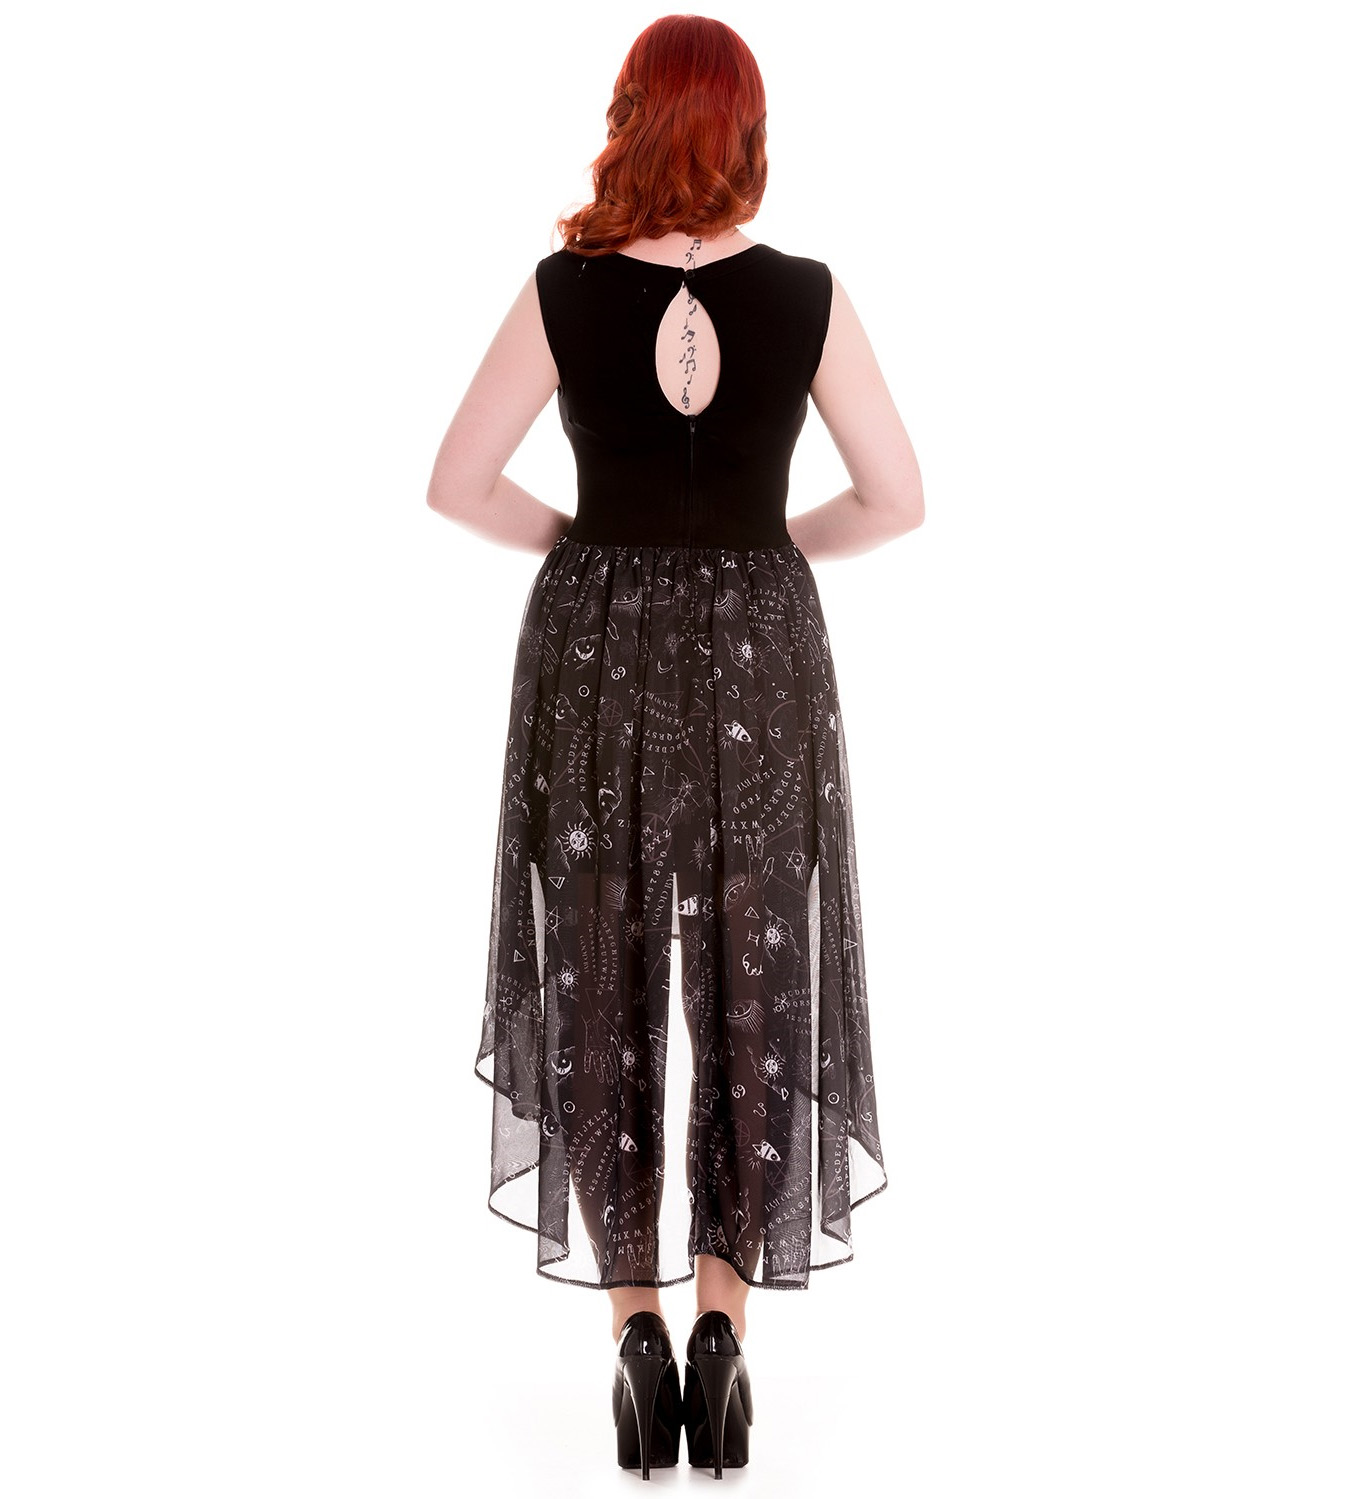 HELL BUNNY Spin Doctor Goth Black Witch Ouija SPIRIT Dress All Sizes